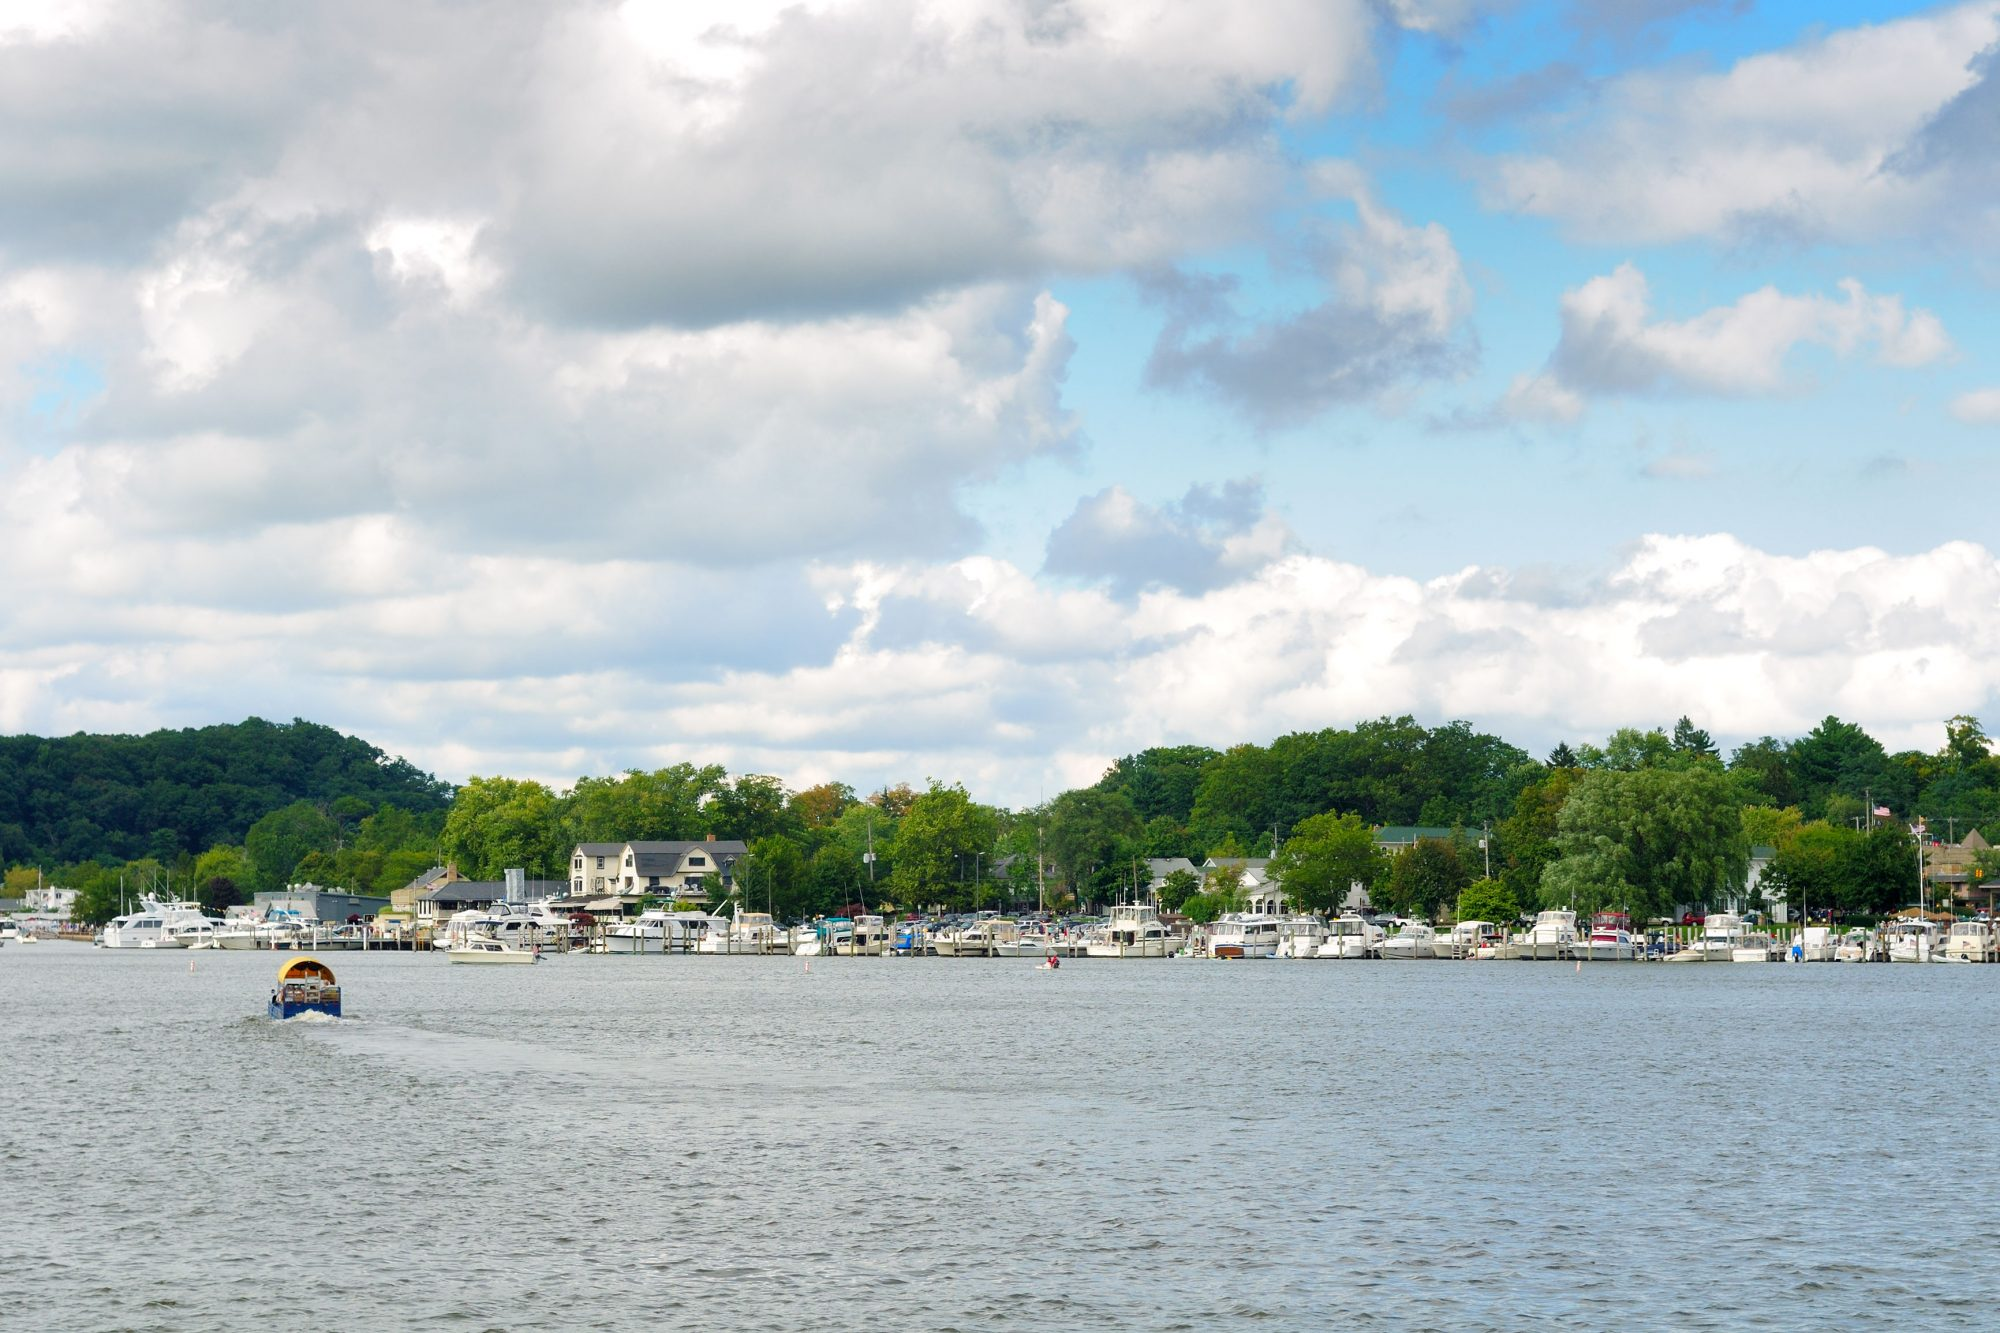 """""""Boats at the little town of Saugatuck, Michigan, seen from the water"""""""